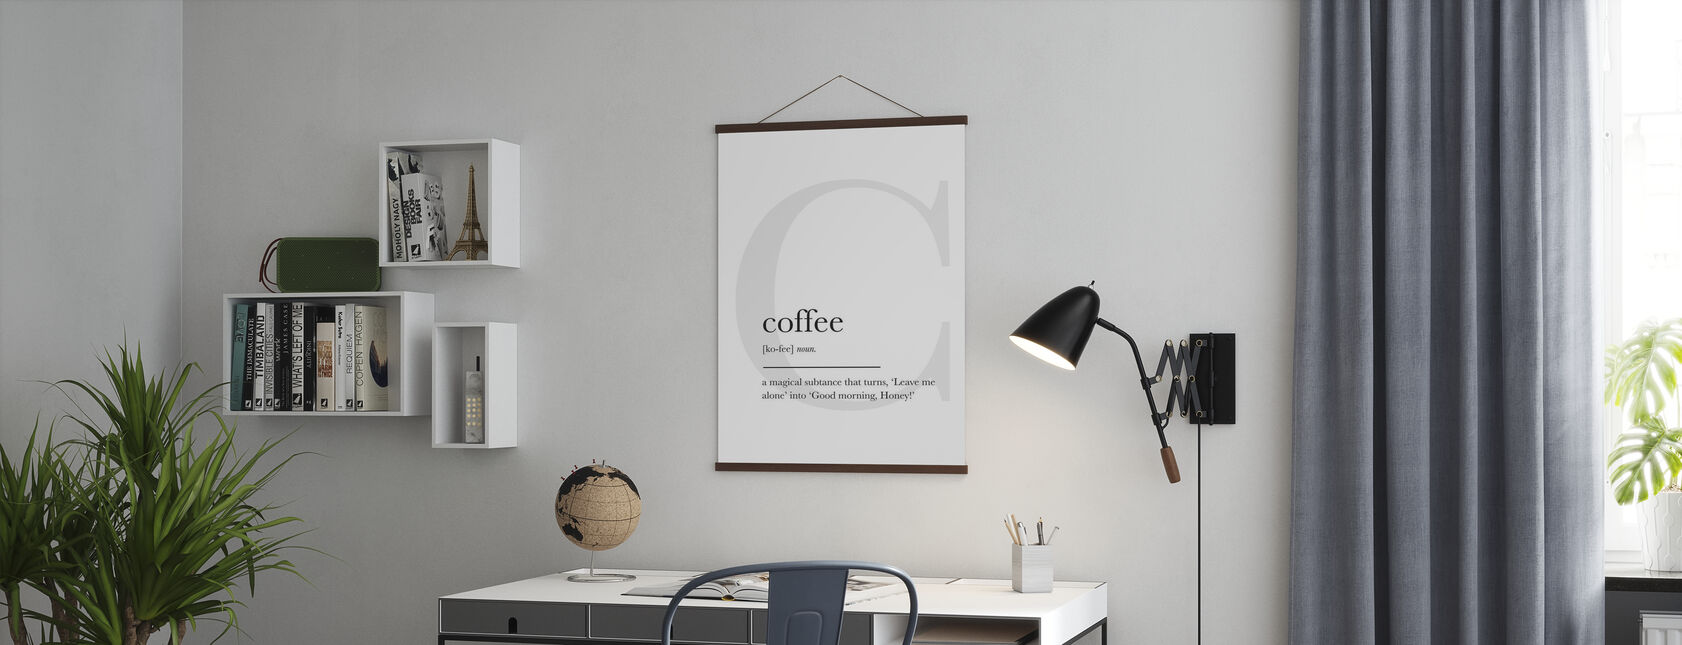 Coffee - Poster - Office